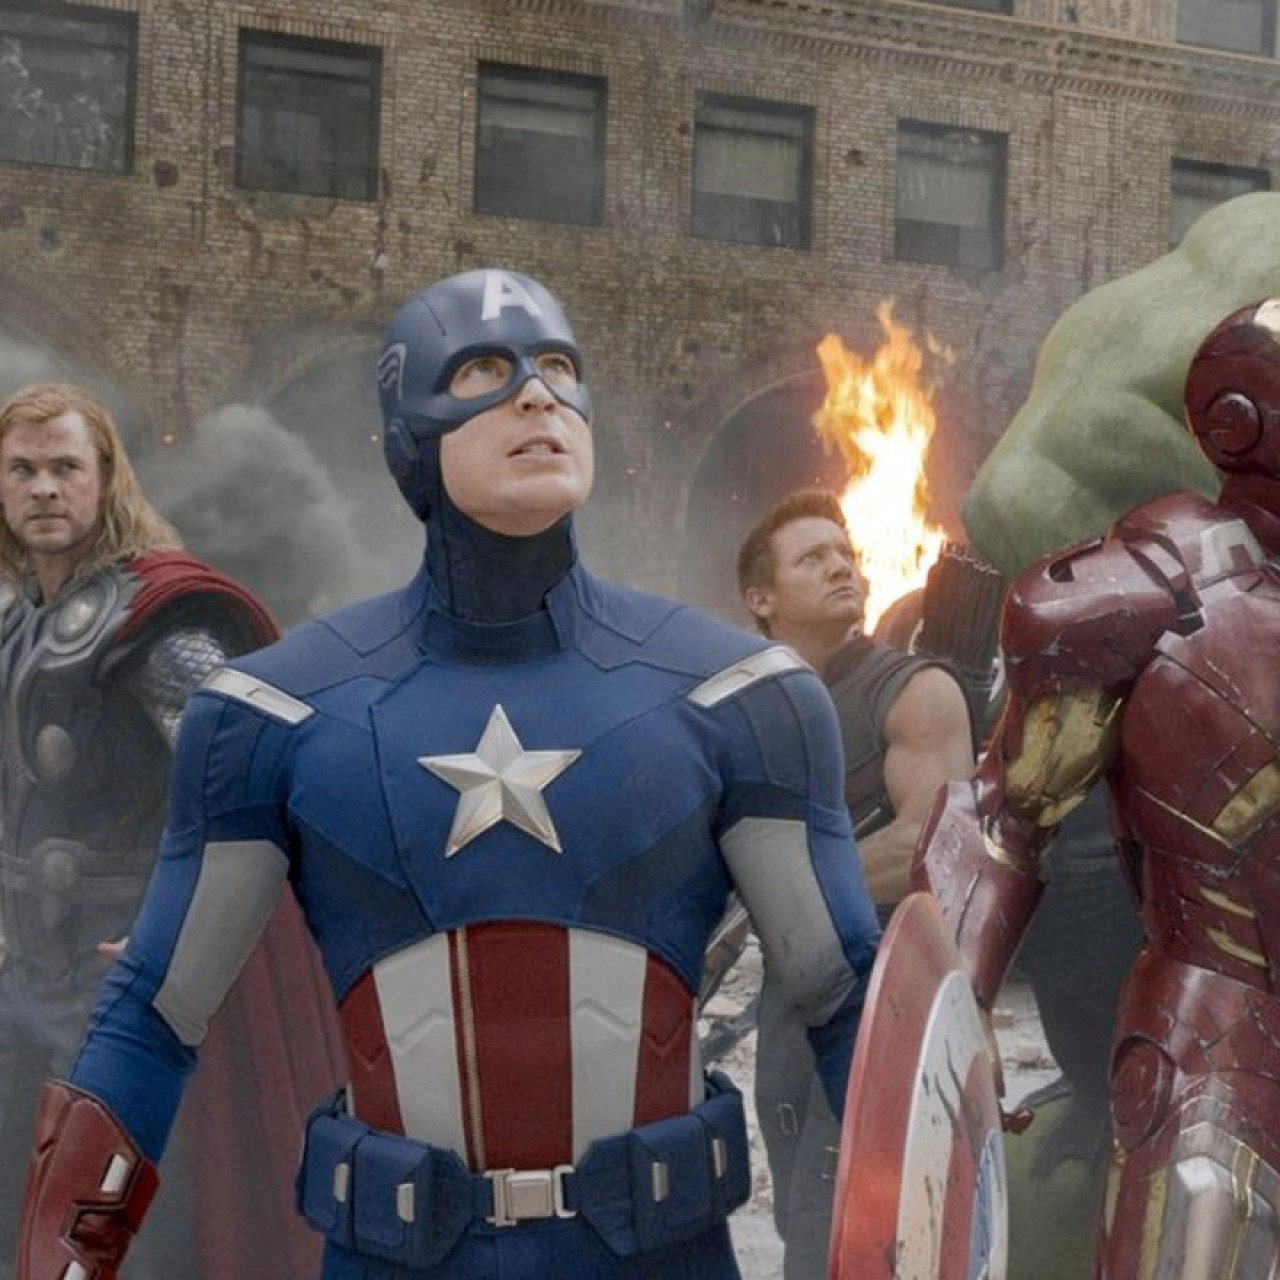 Ranked: Marvel Cinematic Universe films, from worst to best, now